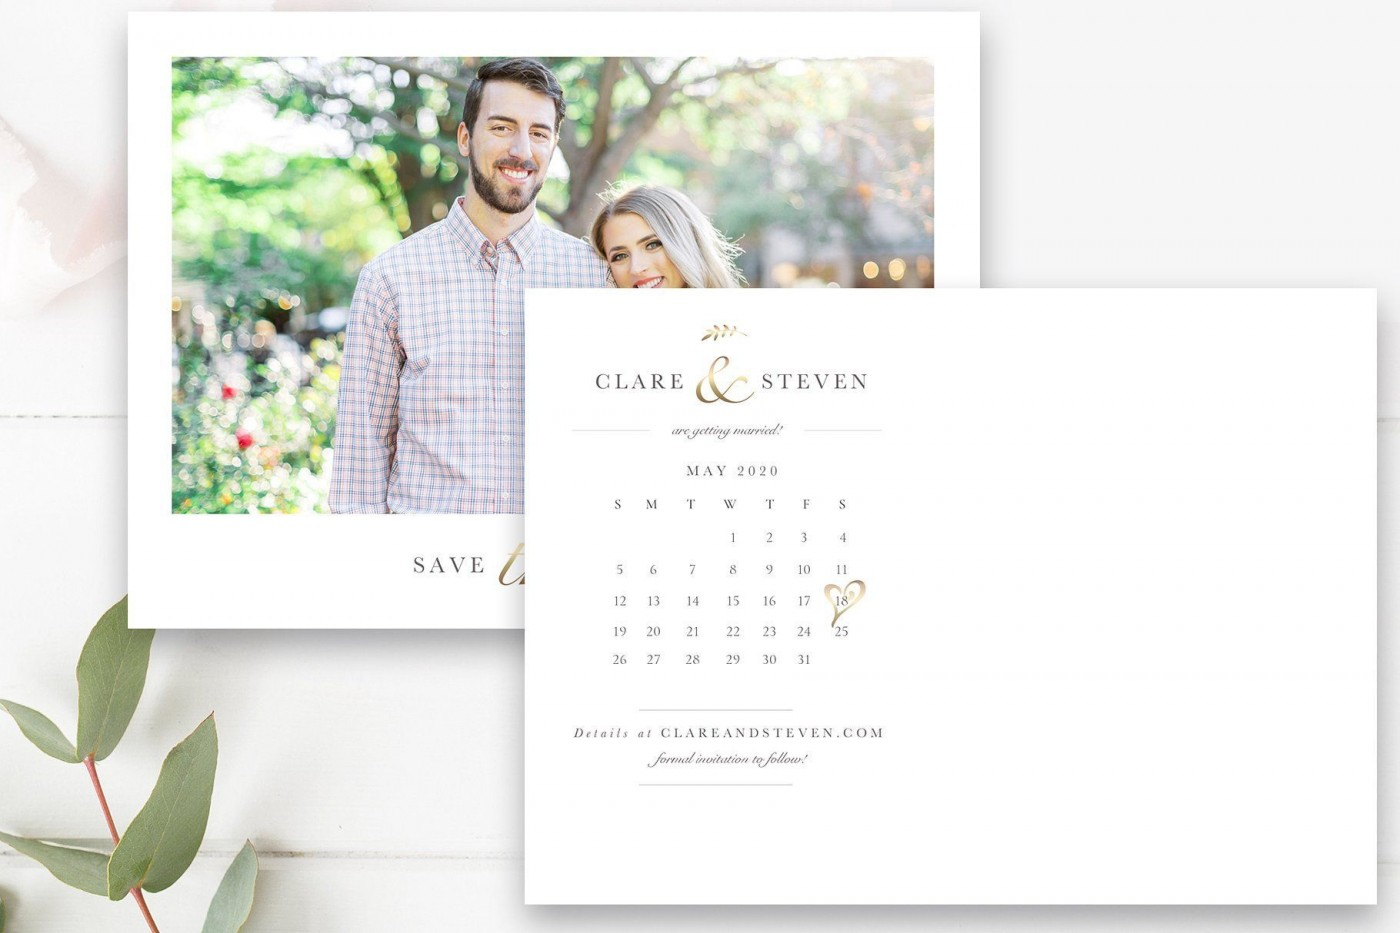 000 Best Save The Date Postcard Template Photo  Diy Free Birthday1400